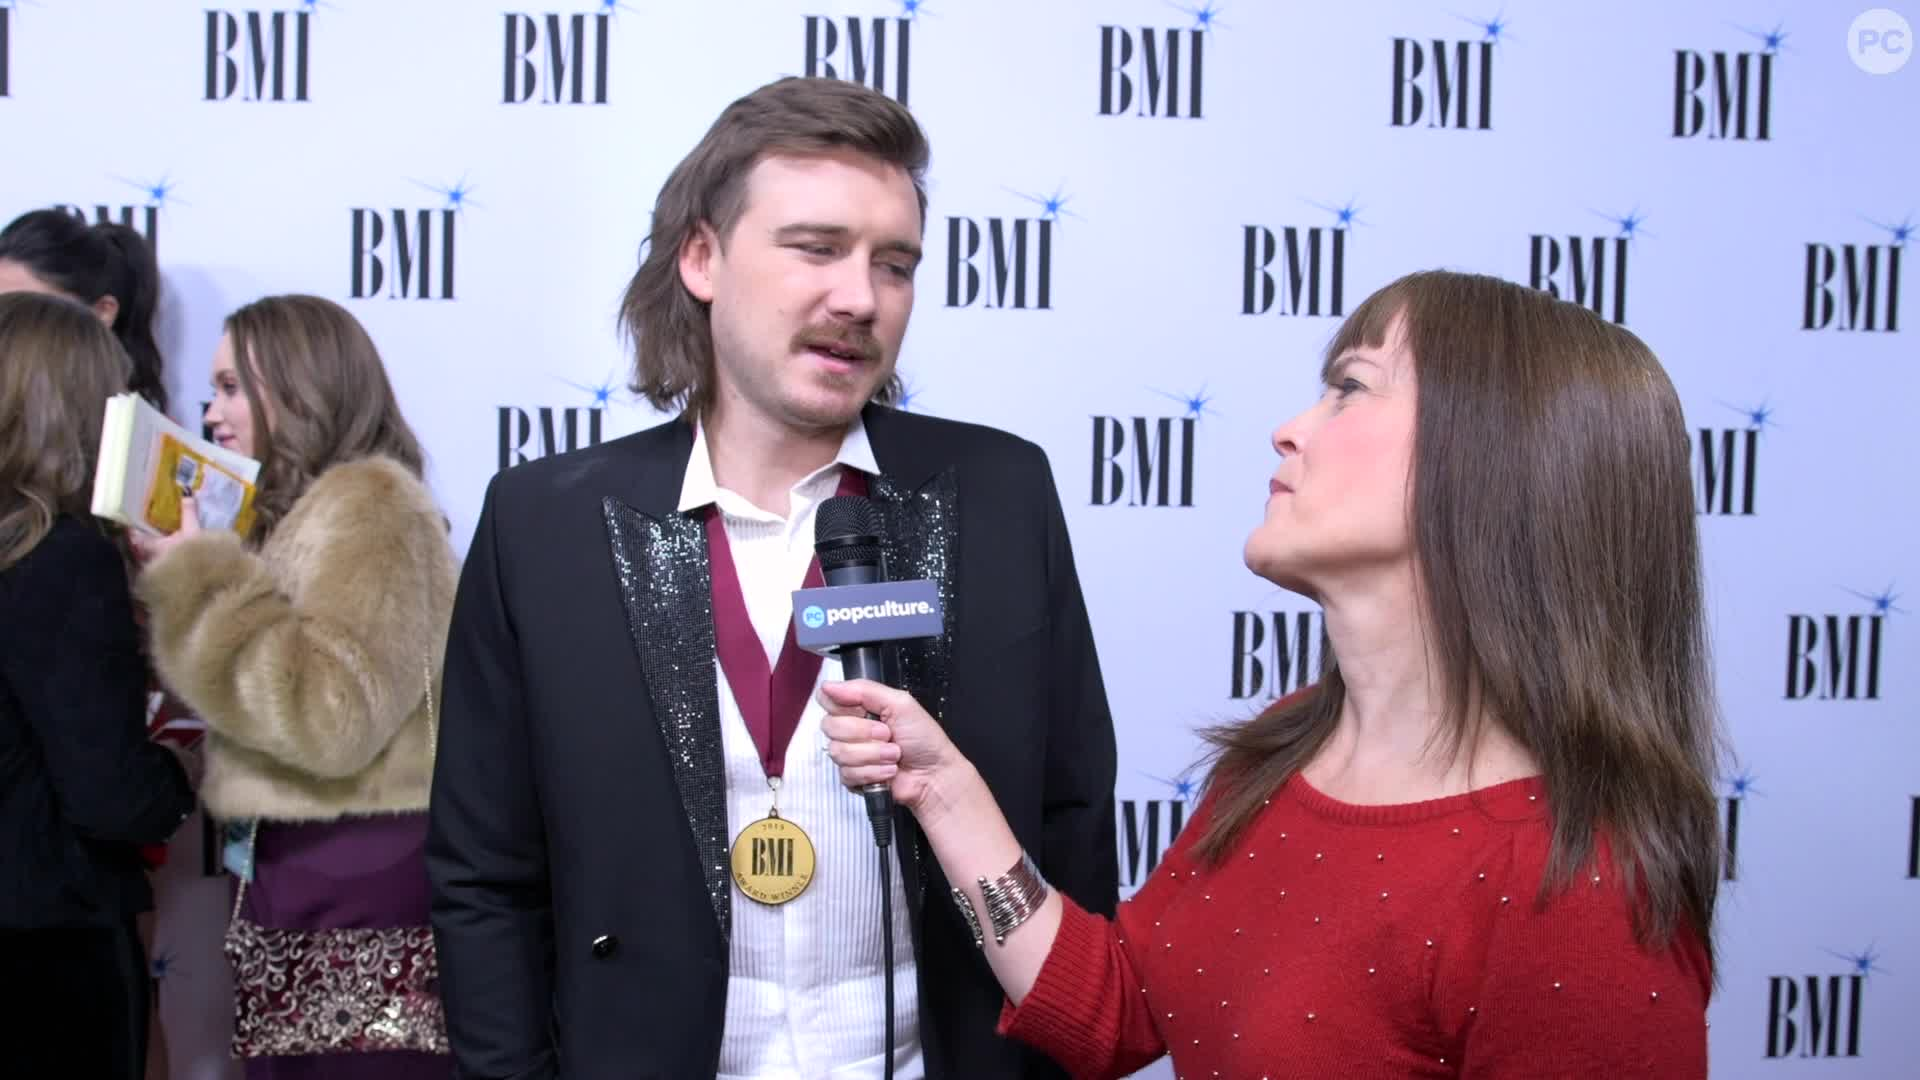 Morgan Wallen and HARDY - 2019 BMI Awards screen capture